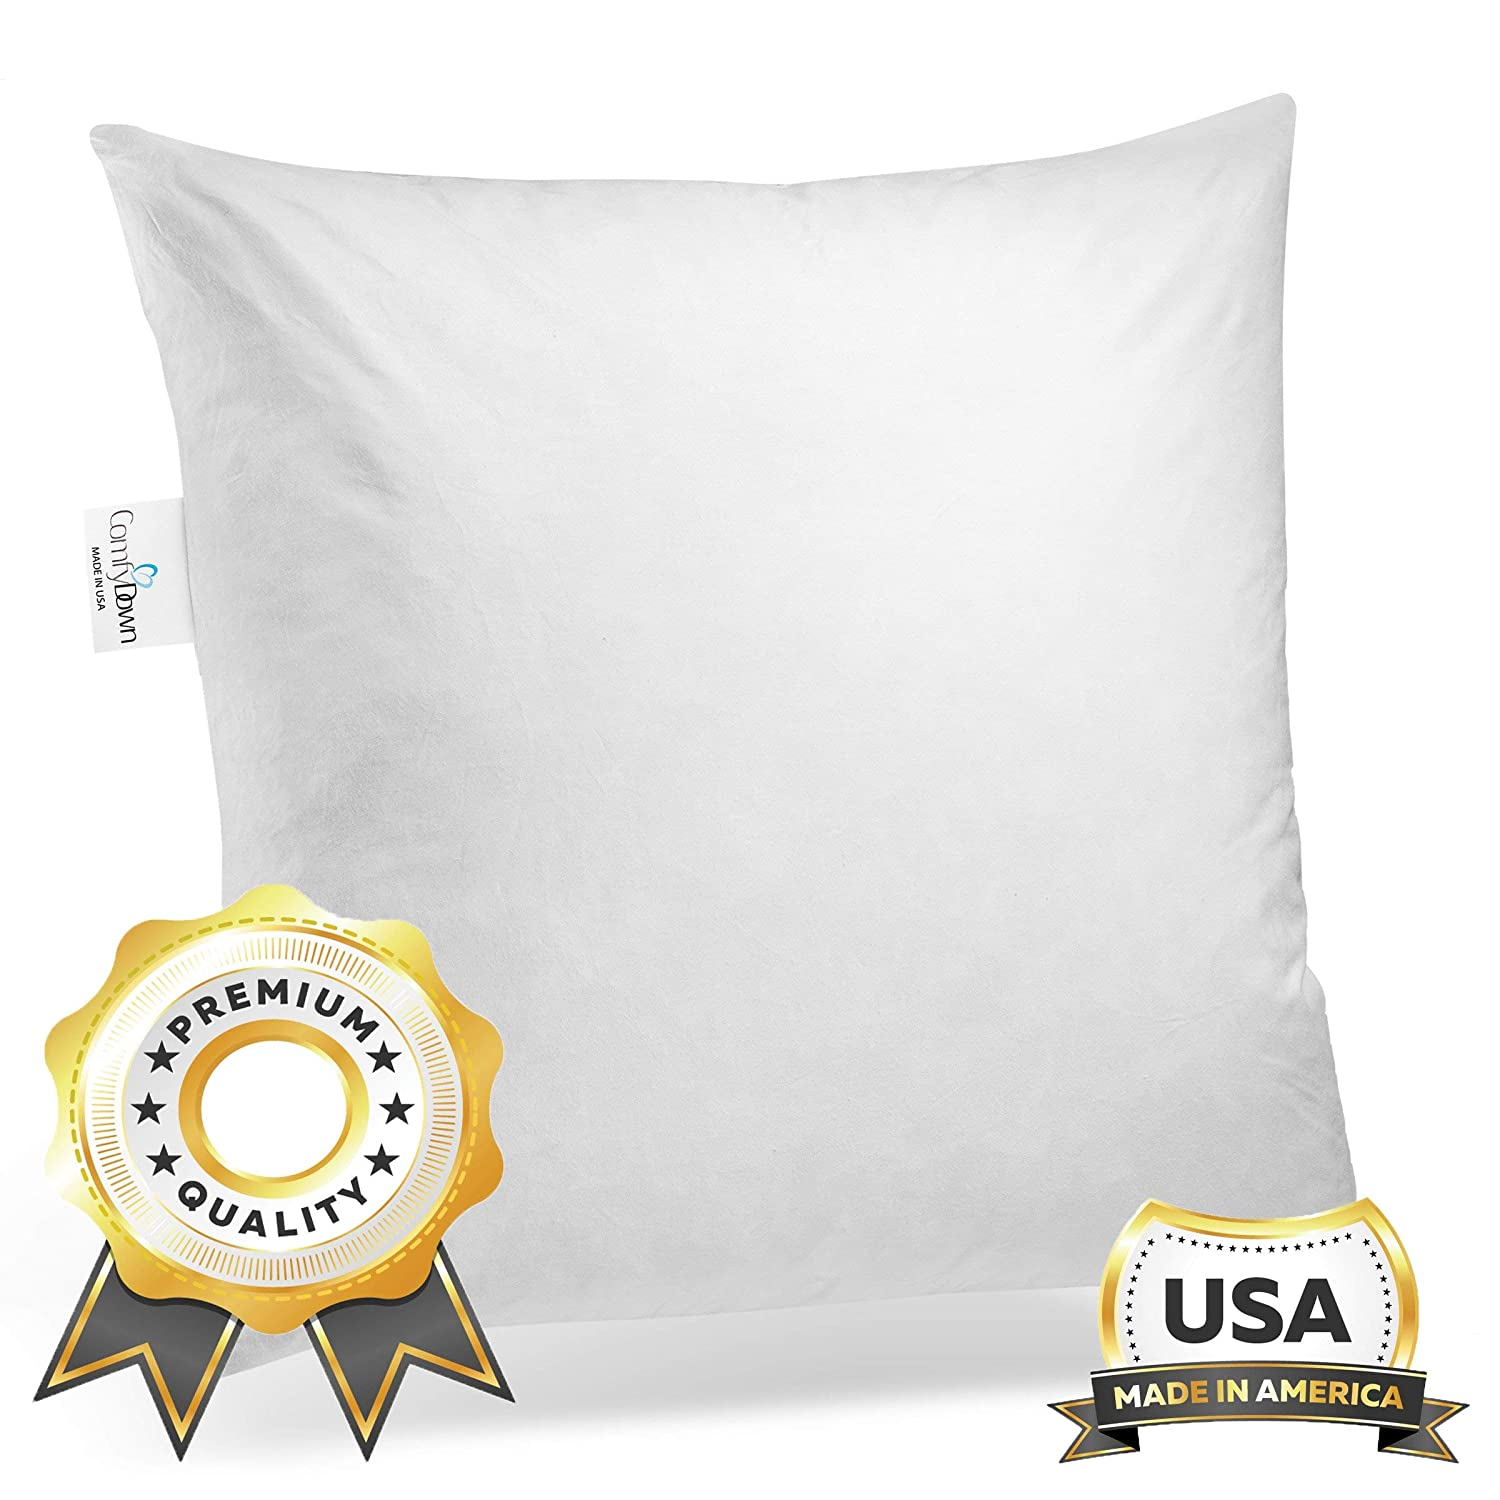 ComfyDown 95% Feather 5% Down, 26 X 26 Square Decorative Pillow Insert, Sham Stuffer - Made in USA